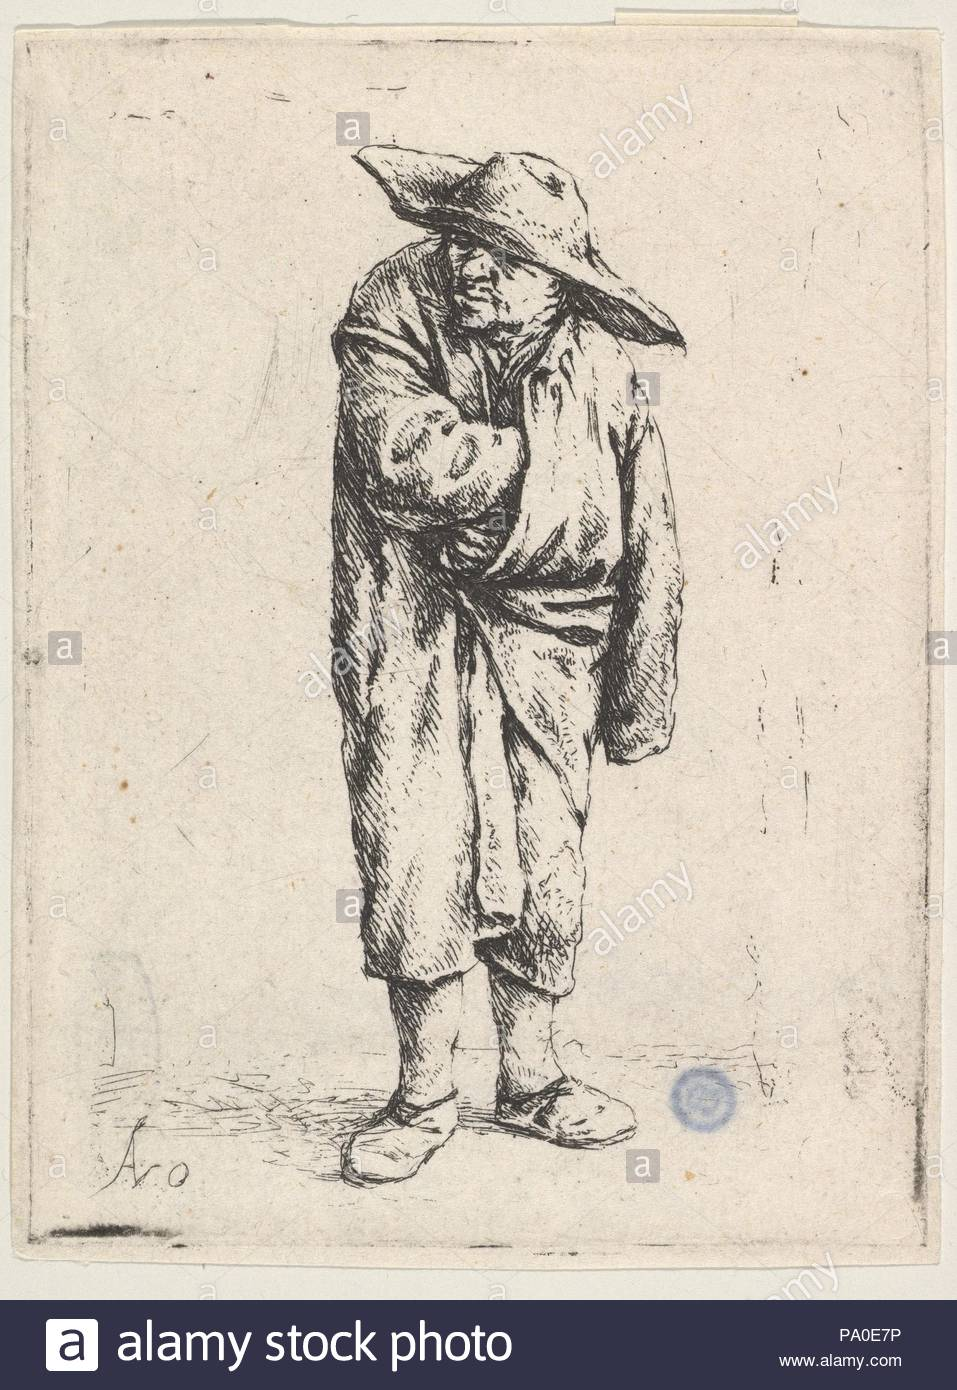 Peasant With His Hand In His Cloak, 17th century, Etching; second state of  seven, sheet: 3 7/16 x 2 1/2 in. (8.7 x 6.4 cm), Prints, Adriaen van Ostade  ...